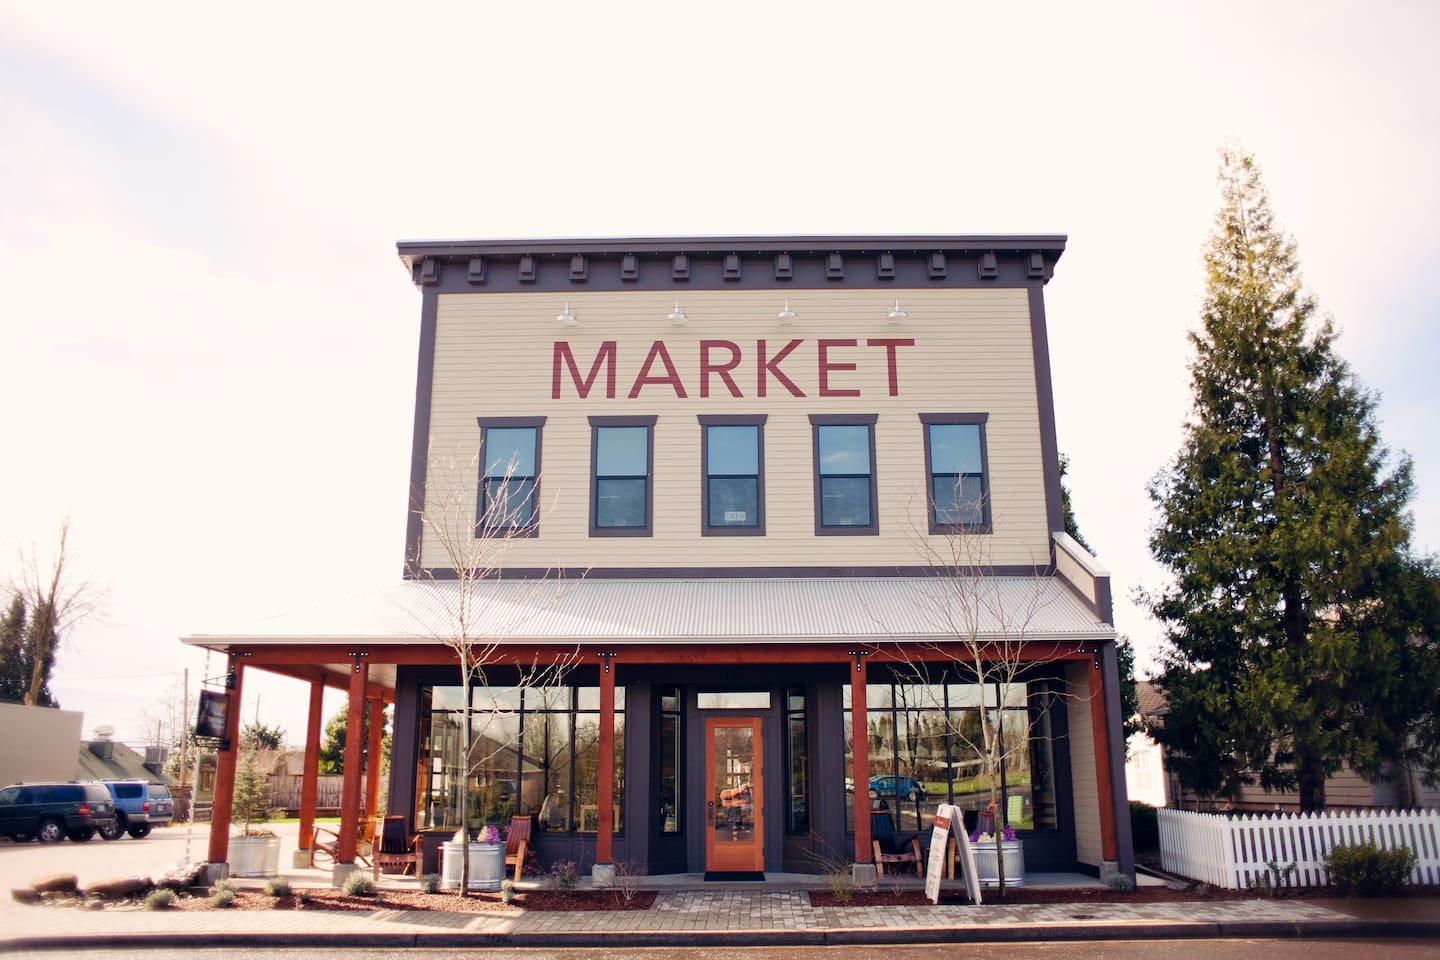 The beautiful Market Loft Studio is located upstairs above the Red Hills Market.